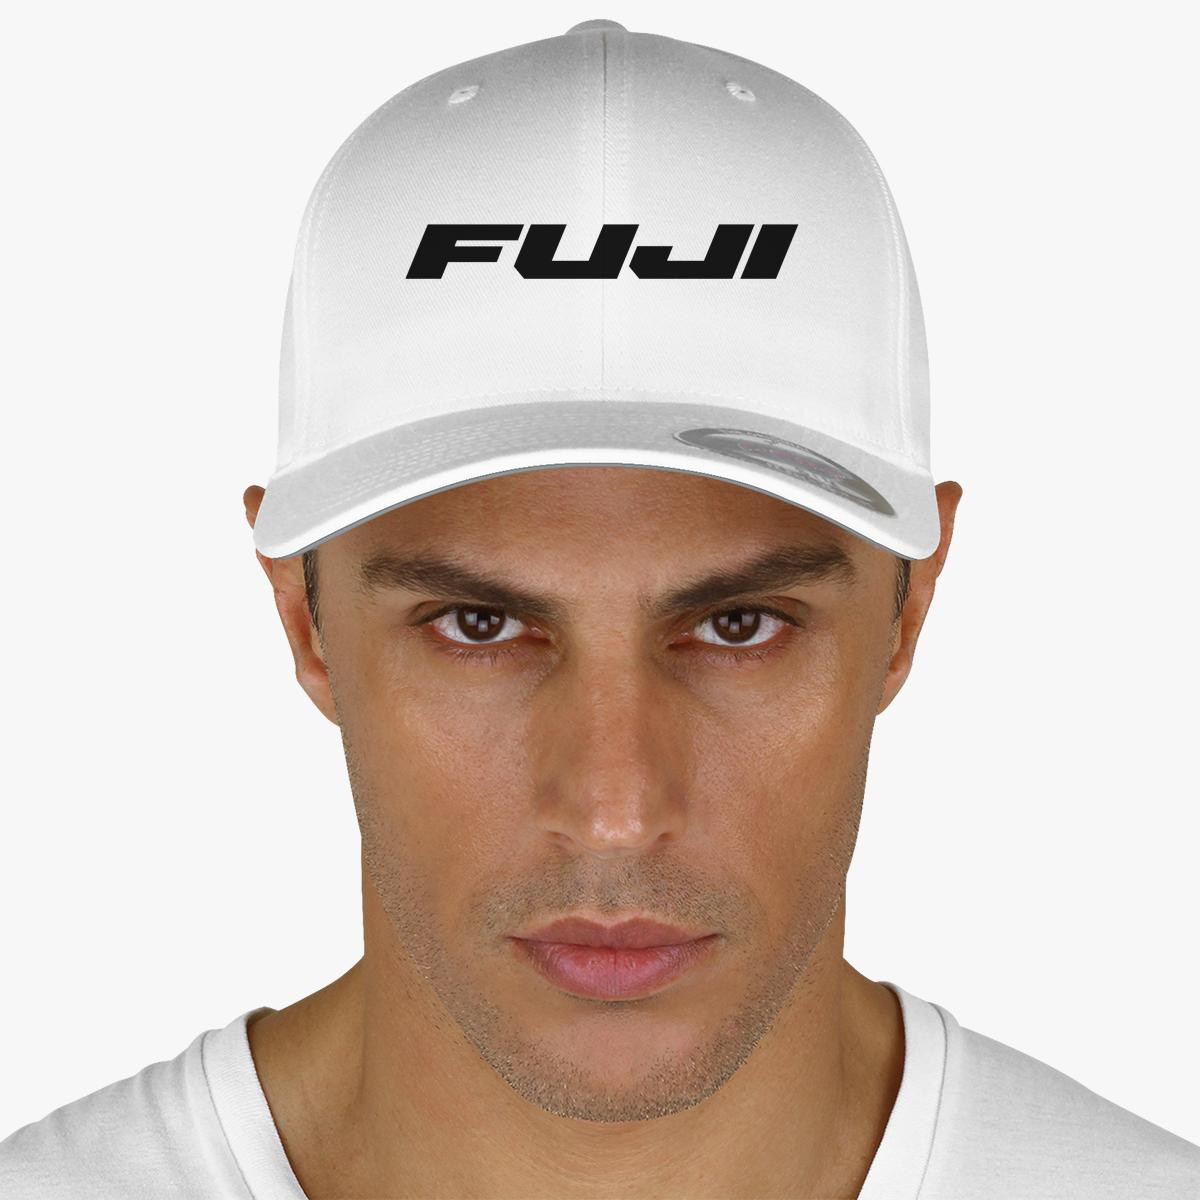 fuji-bicycles-logo4-baseball-cap-white.j